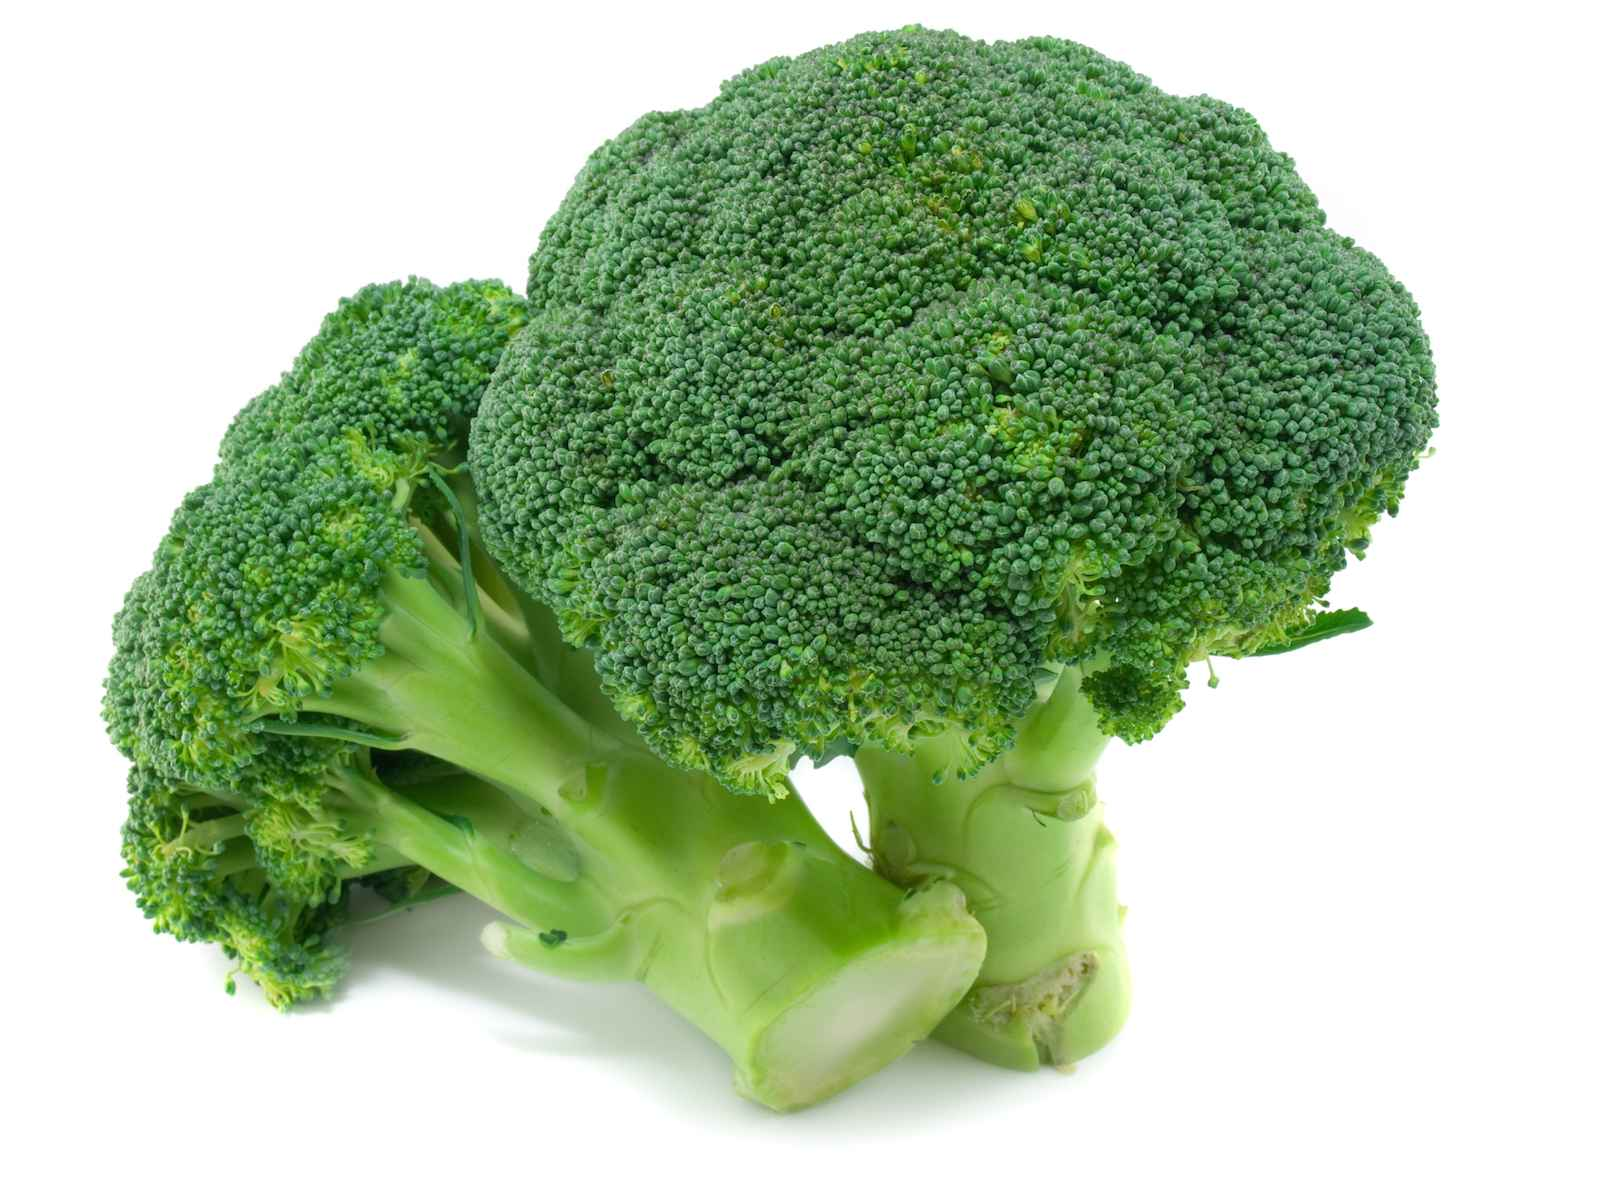 Organic Broccoli Bunch (1 lb aprox)